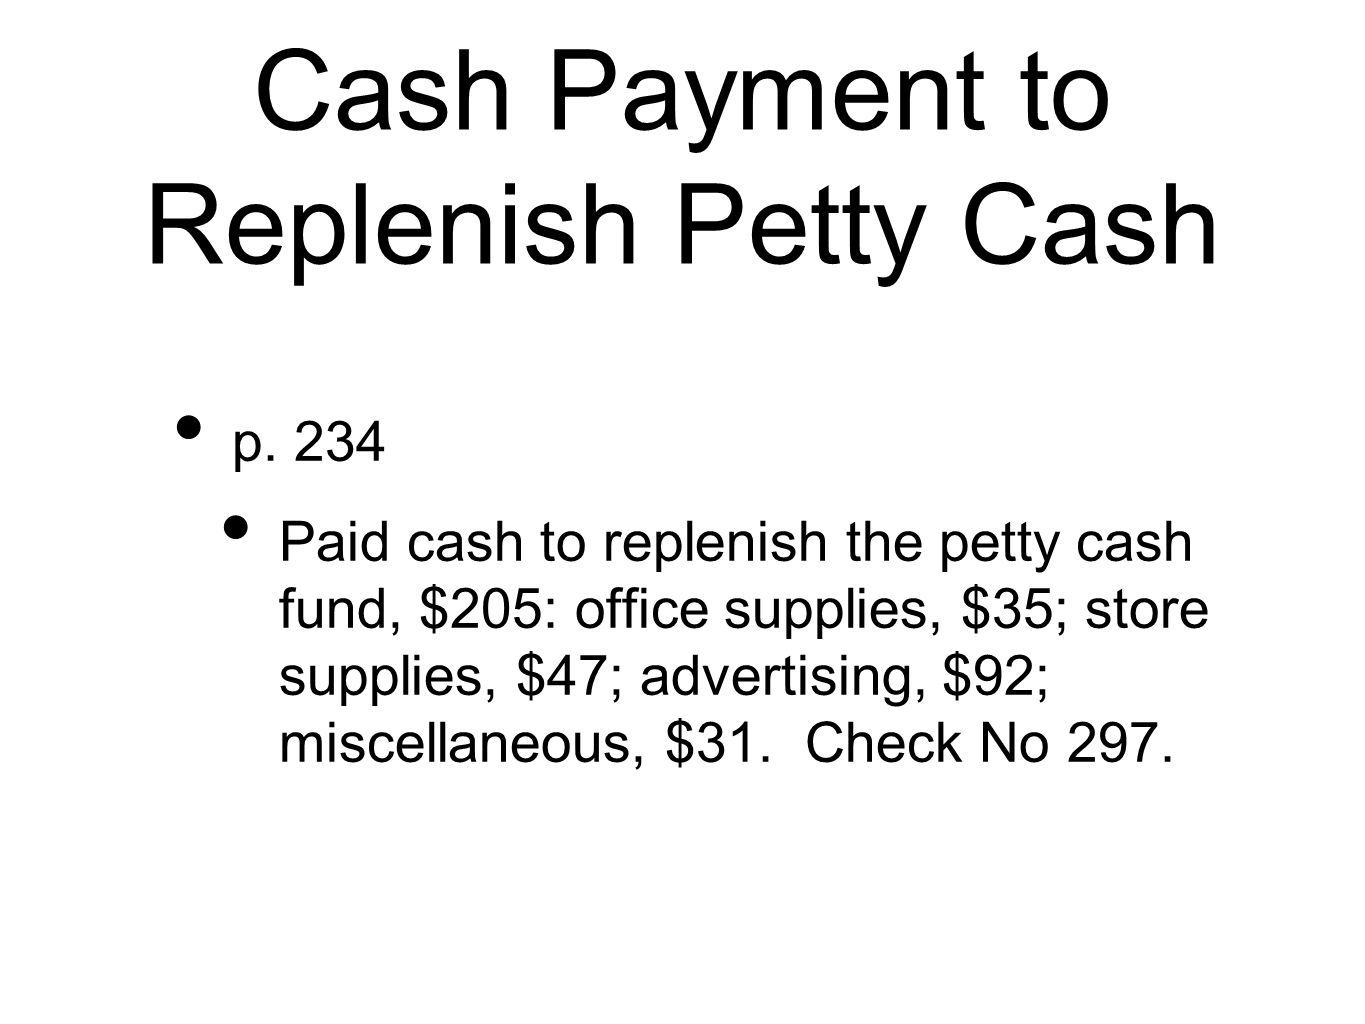 Cash Payment to Replenish Petty Cash p. 234 Paid cash to replenish the petty cash fund, $205: office supplies, $35; store supplies, $47; advertising,